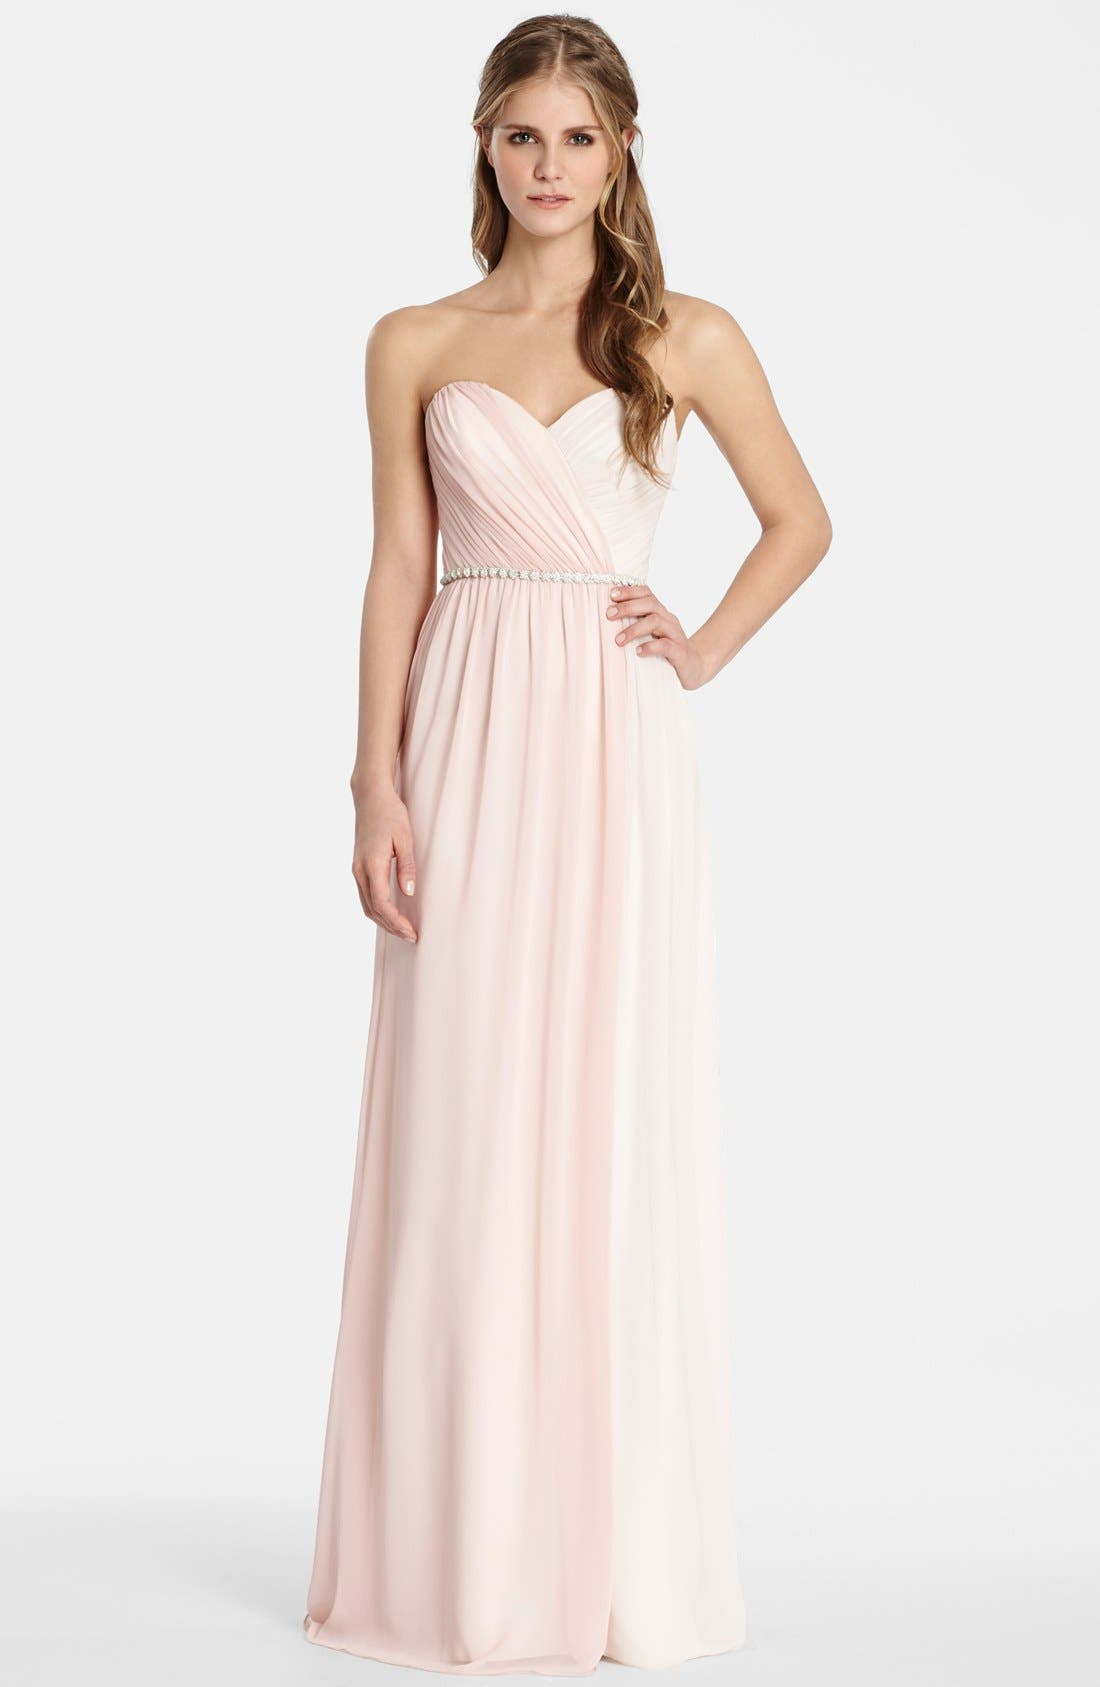 Main Image - Jim HjelmOccasions Two Tone Strapless Chiffon Gown